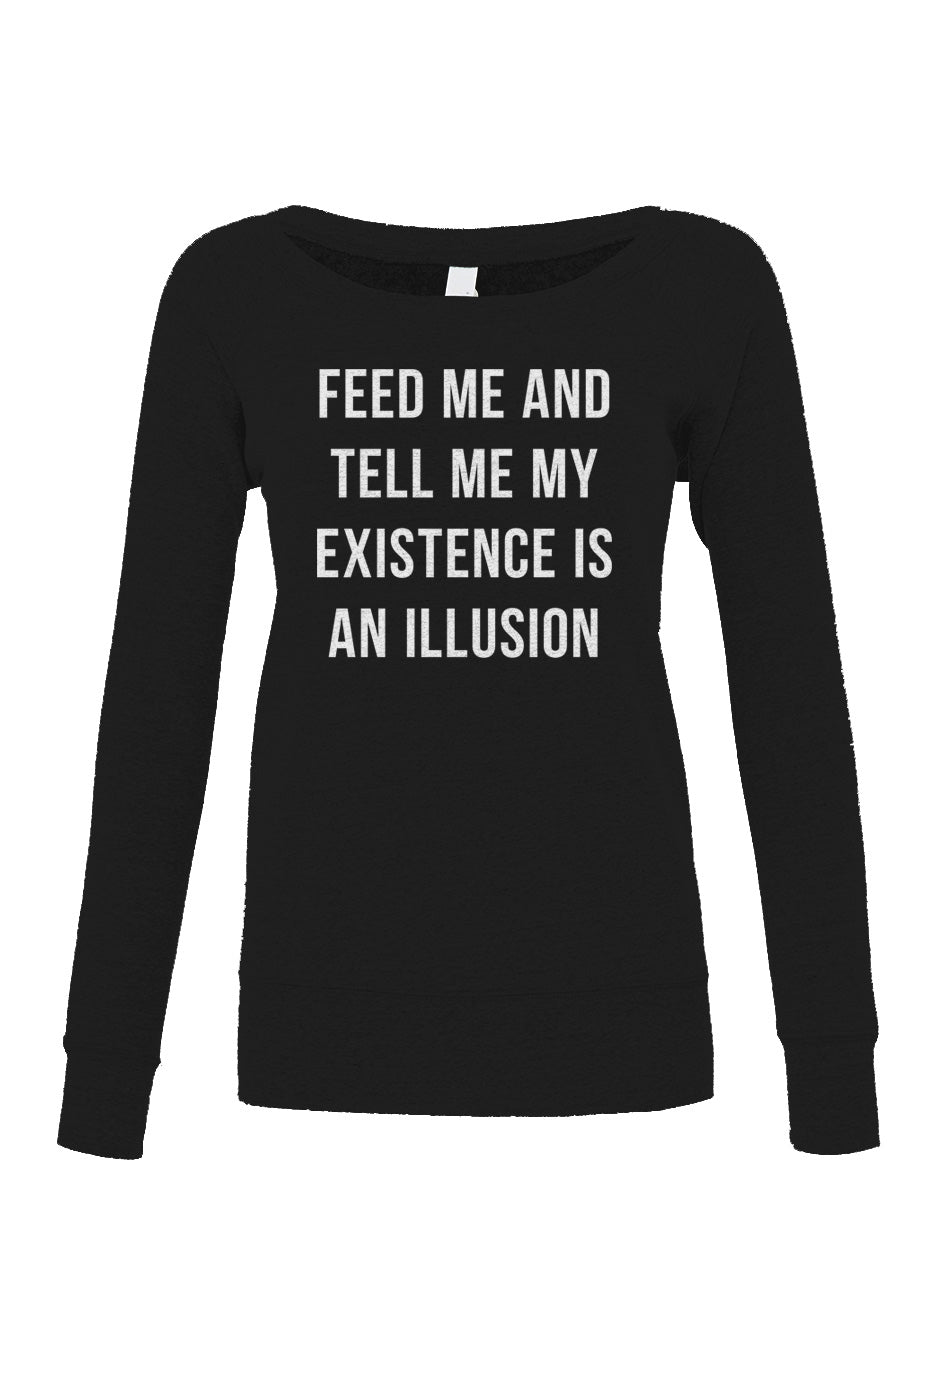 Women's Feed Me and Tell Me My Existence is an Illusion Scoop Neck Fleece - Existentialism Shirt